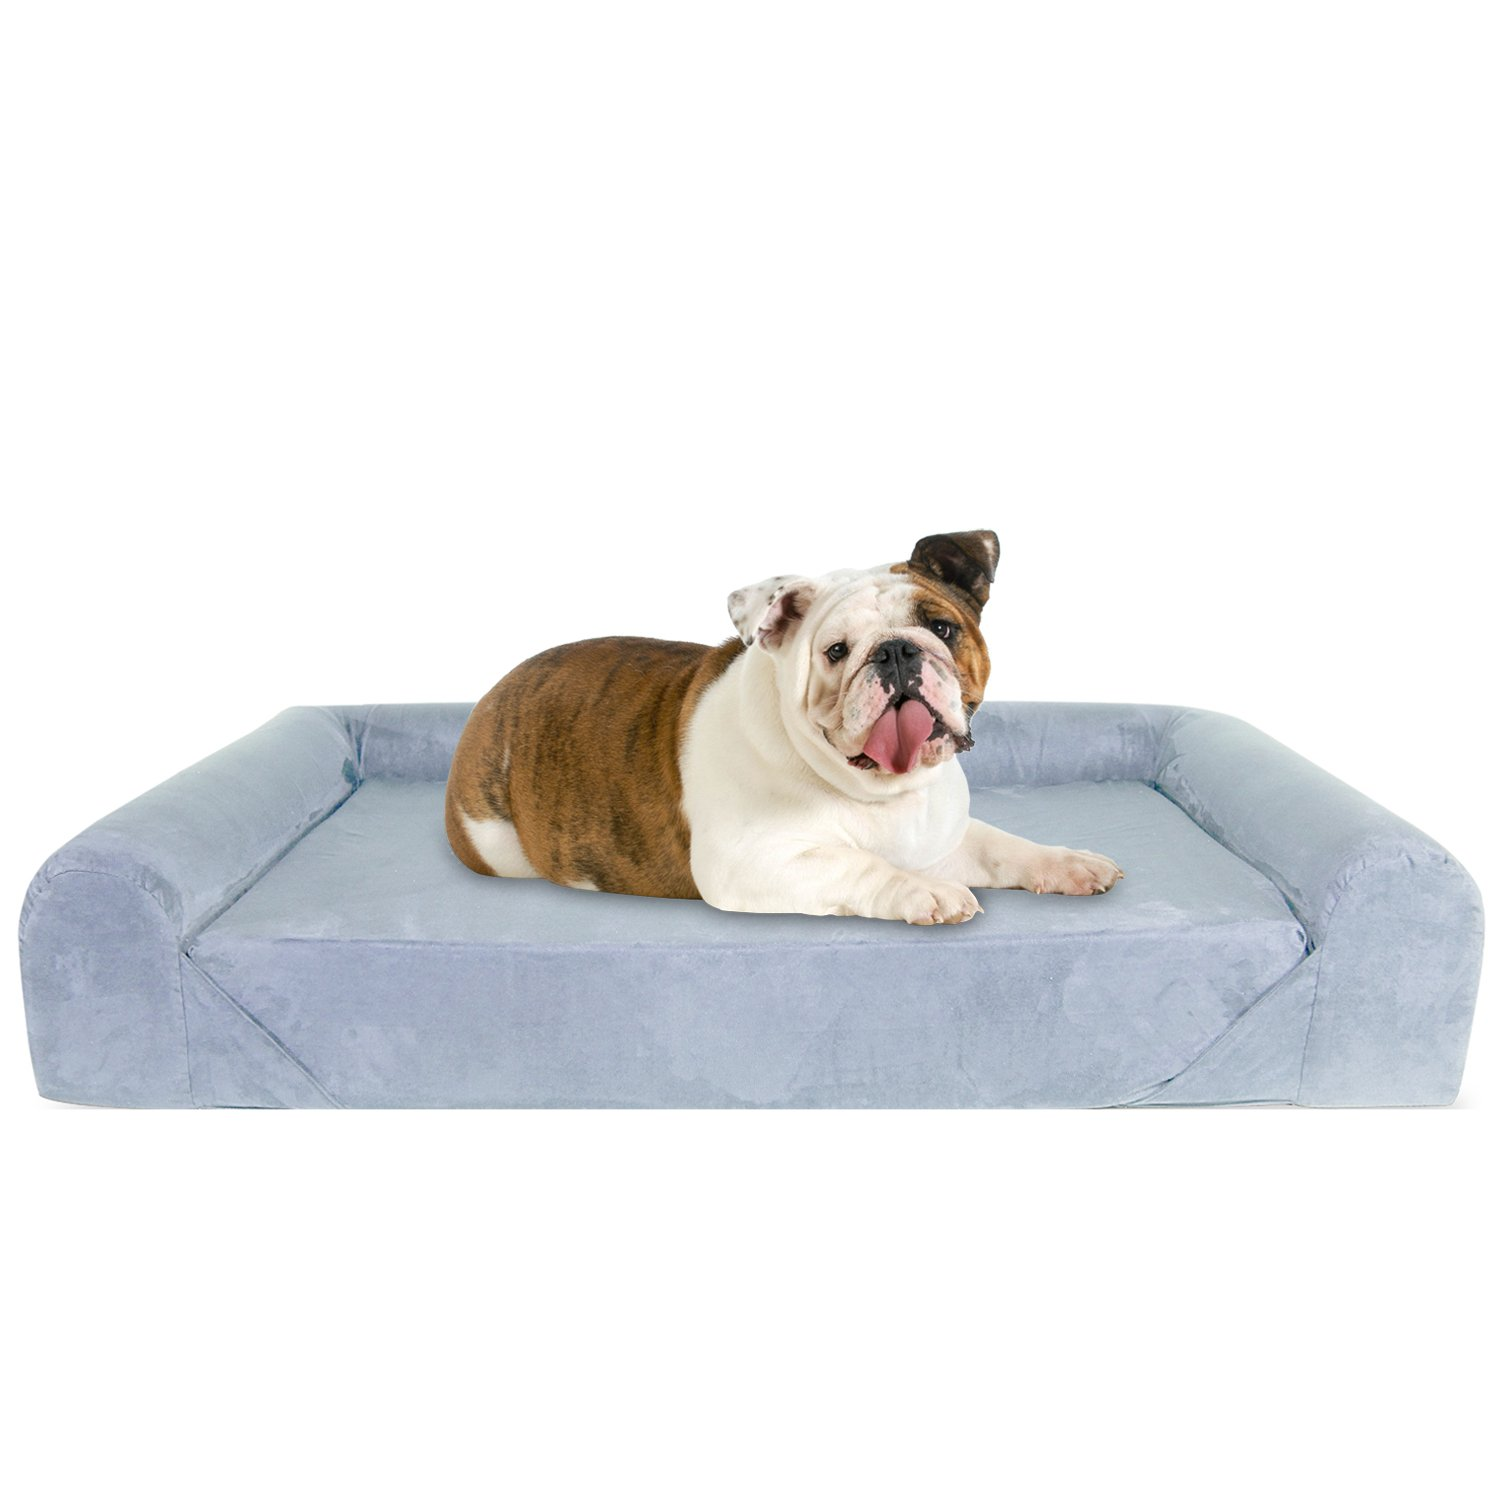 KOPEKS Deluxe Orthopedic Memory Foam Sofa Lounge Dog Bed - Large - Grey by KOPEKS